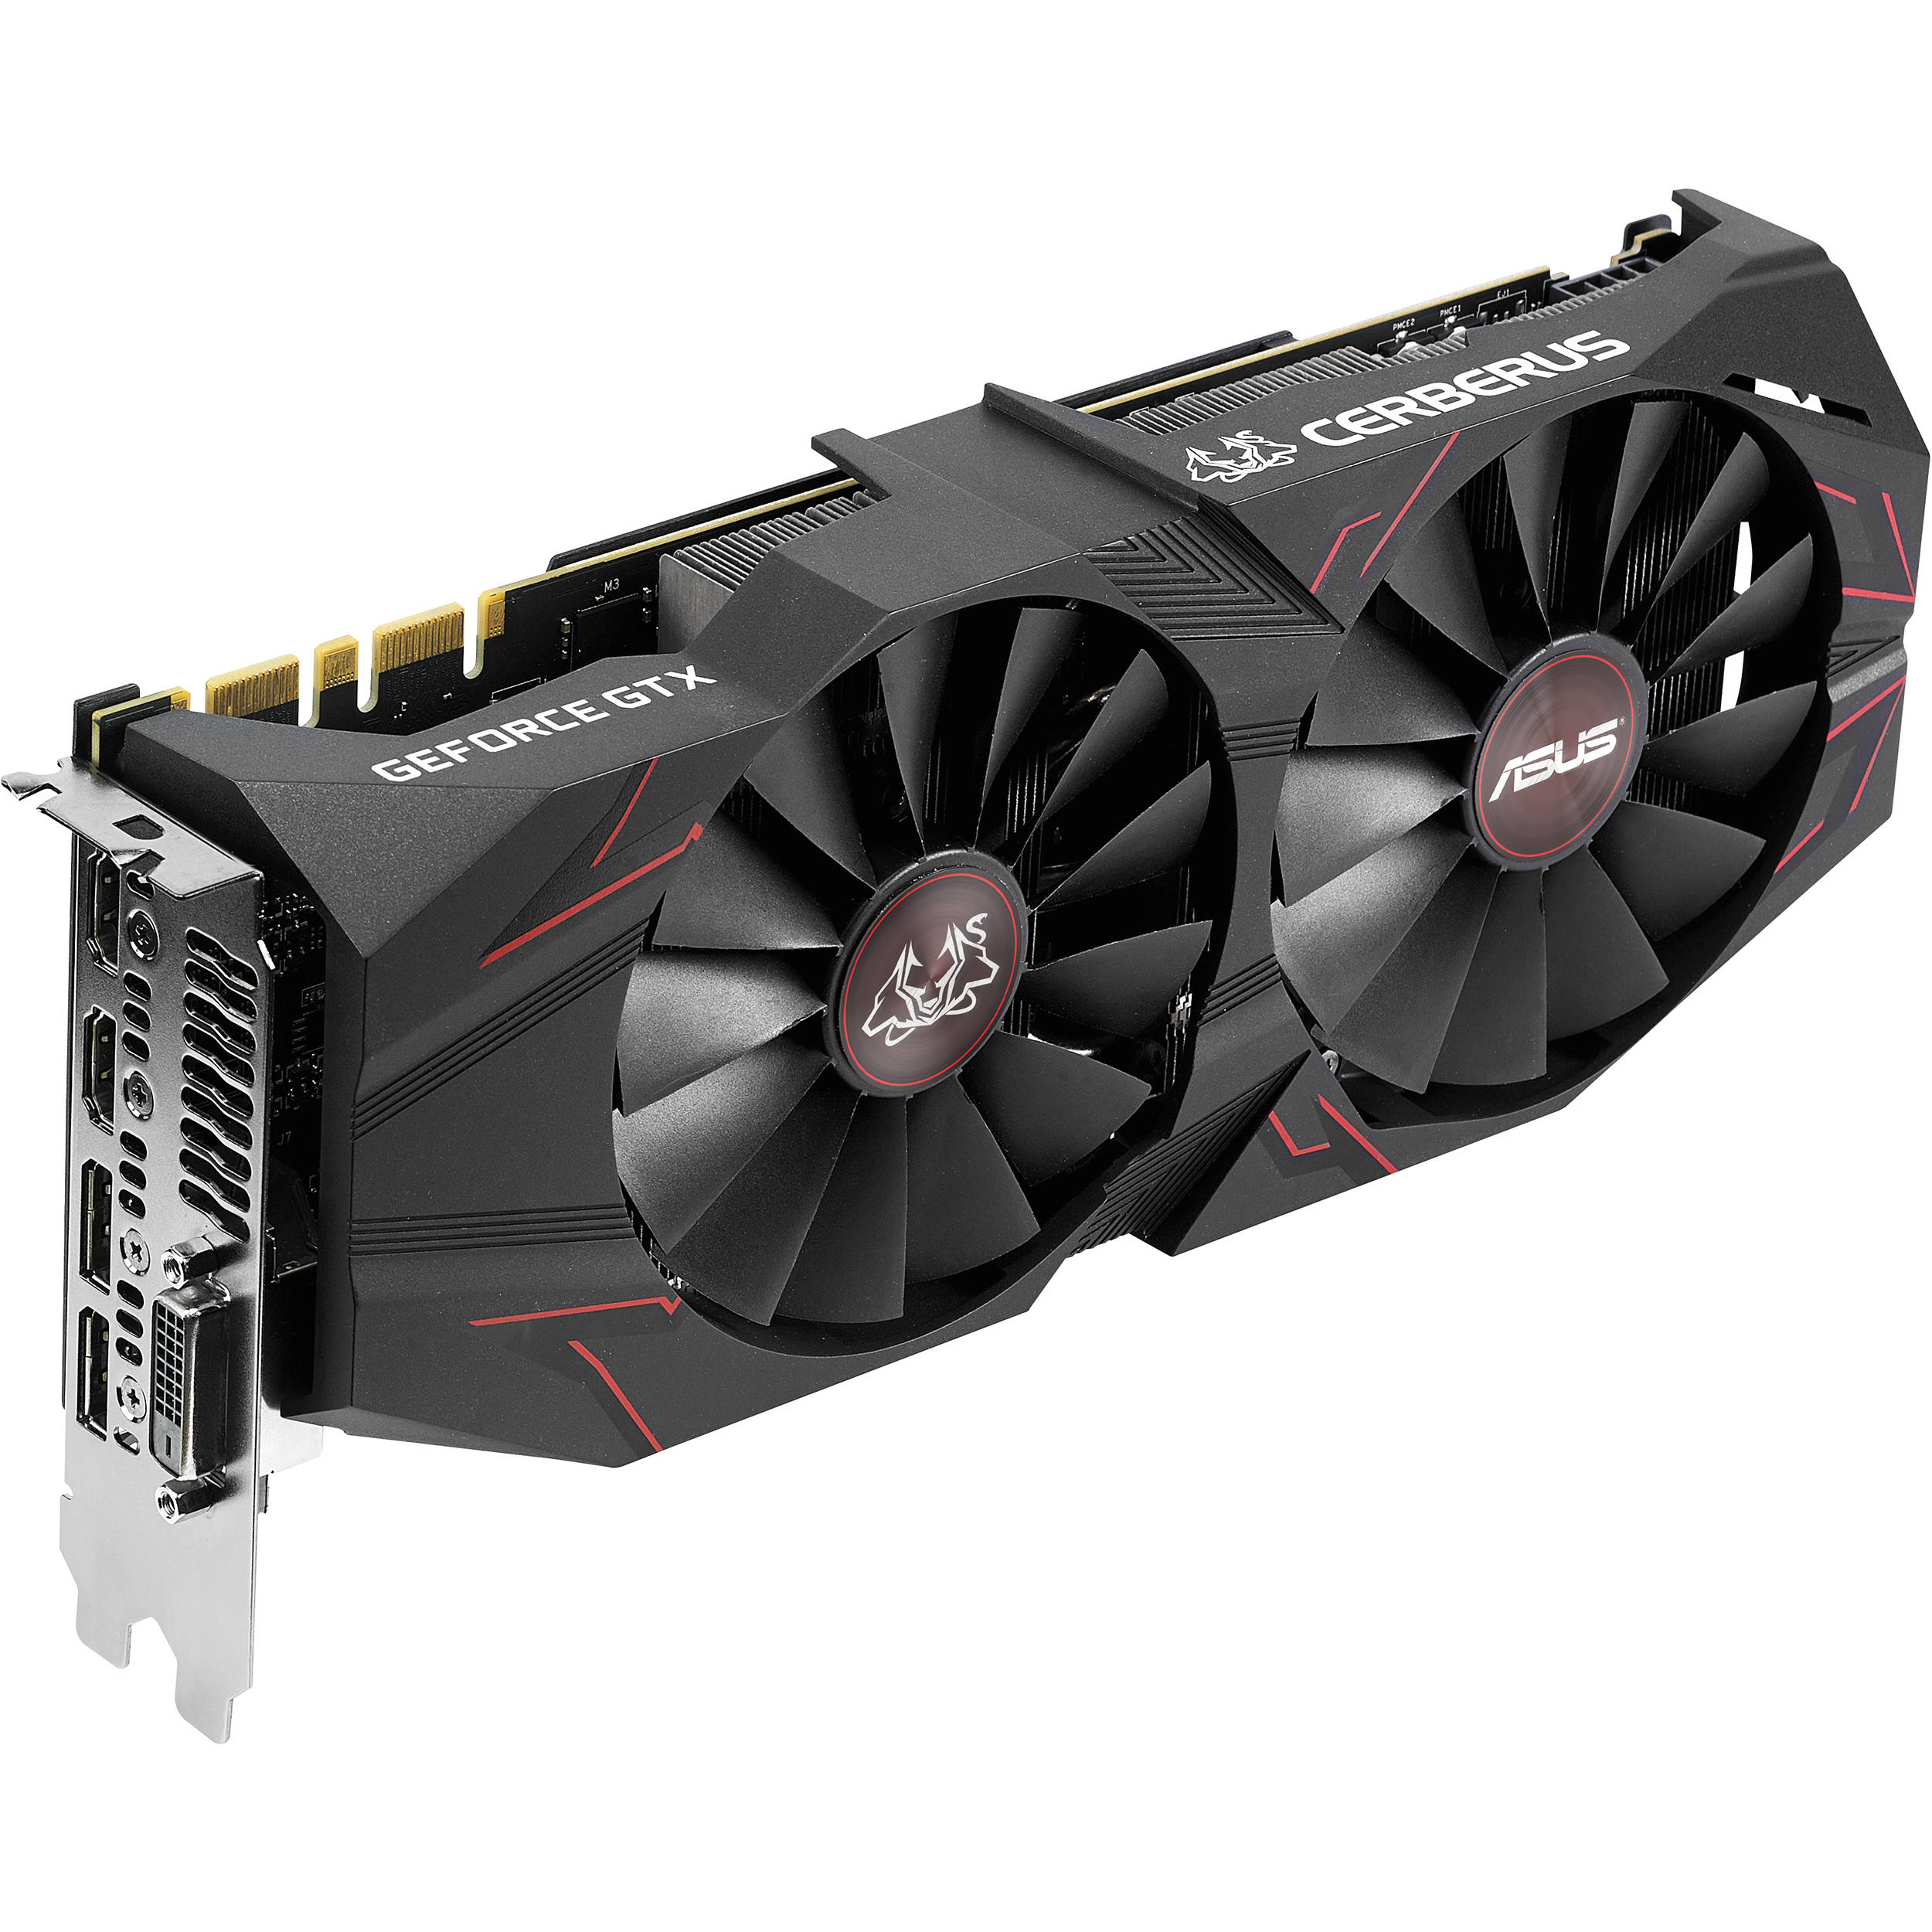 ASUS Cerberus GeForce GTX 1070 Ti Advanced Edition Graphics Card